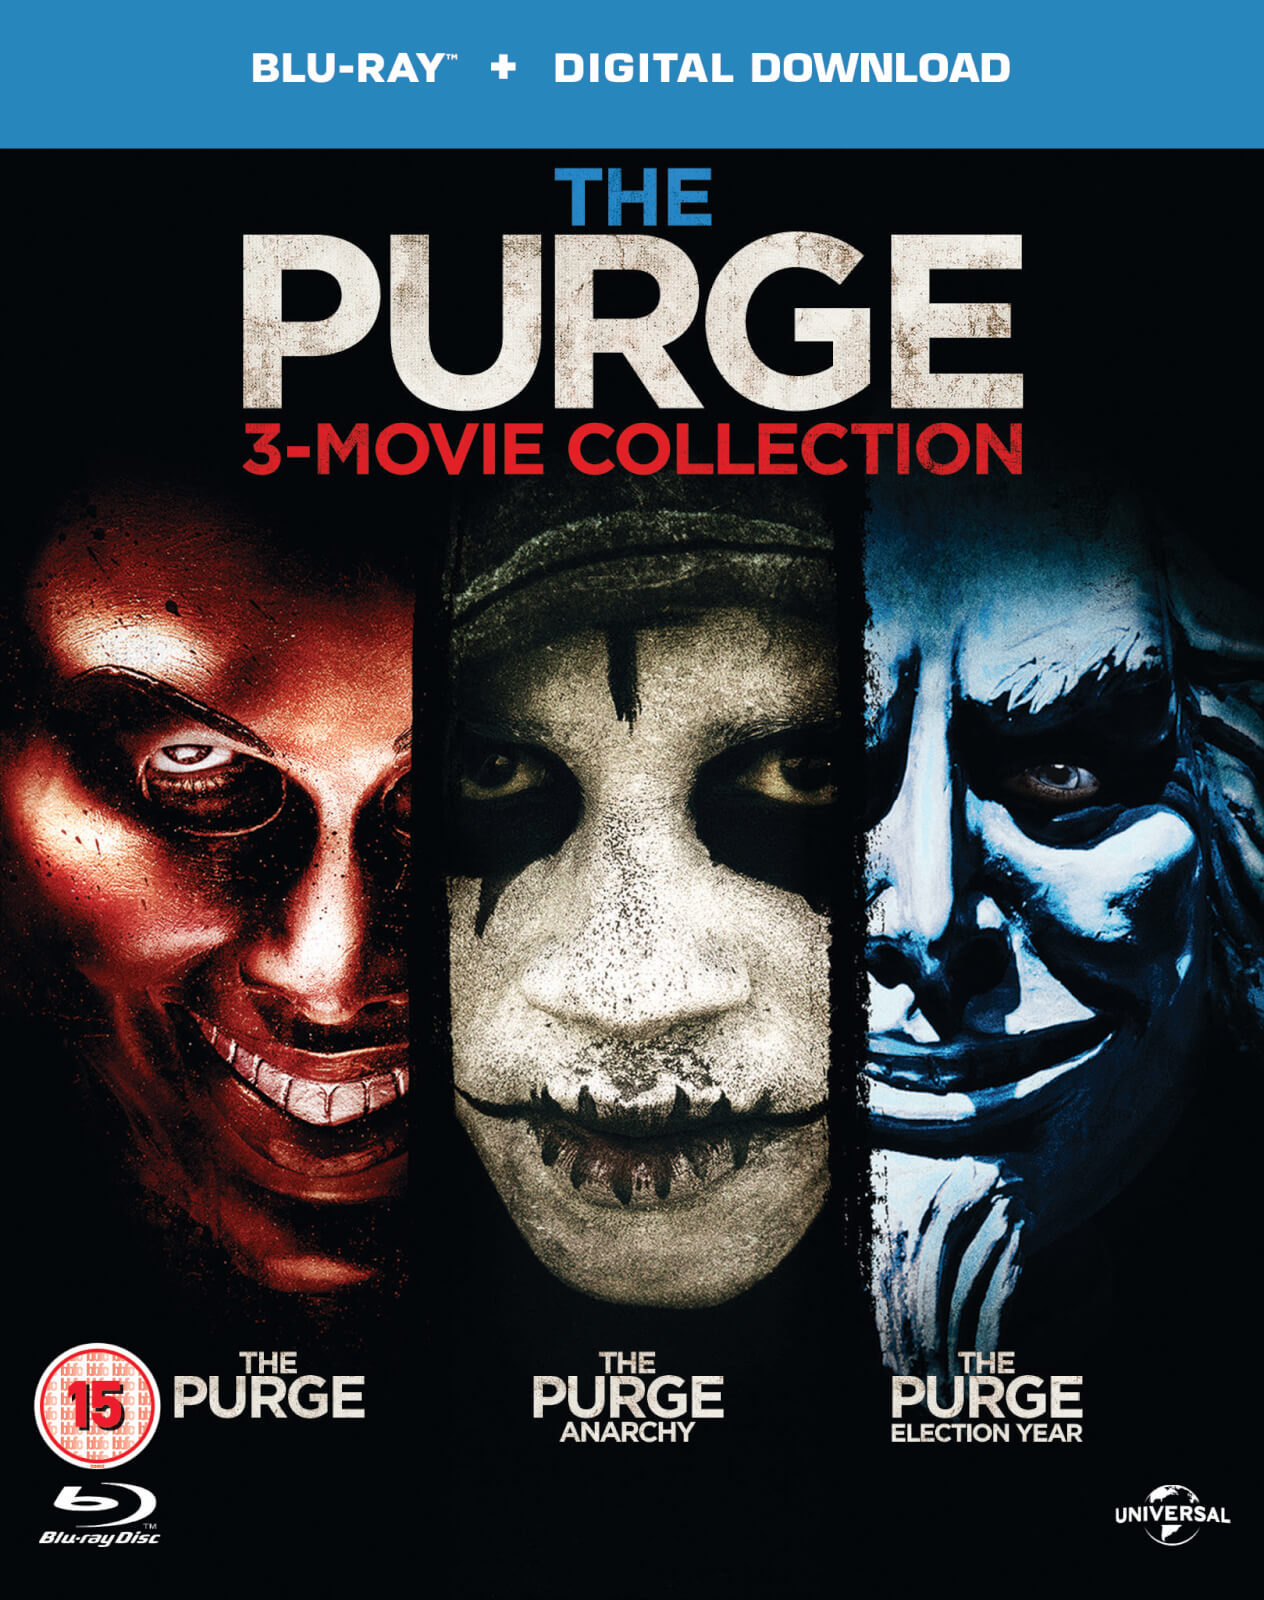 The Purge/The Purge: Anarchy/The Purge: Election Year (Includes Ultraviolet Copy)